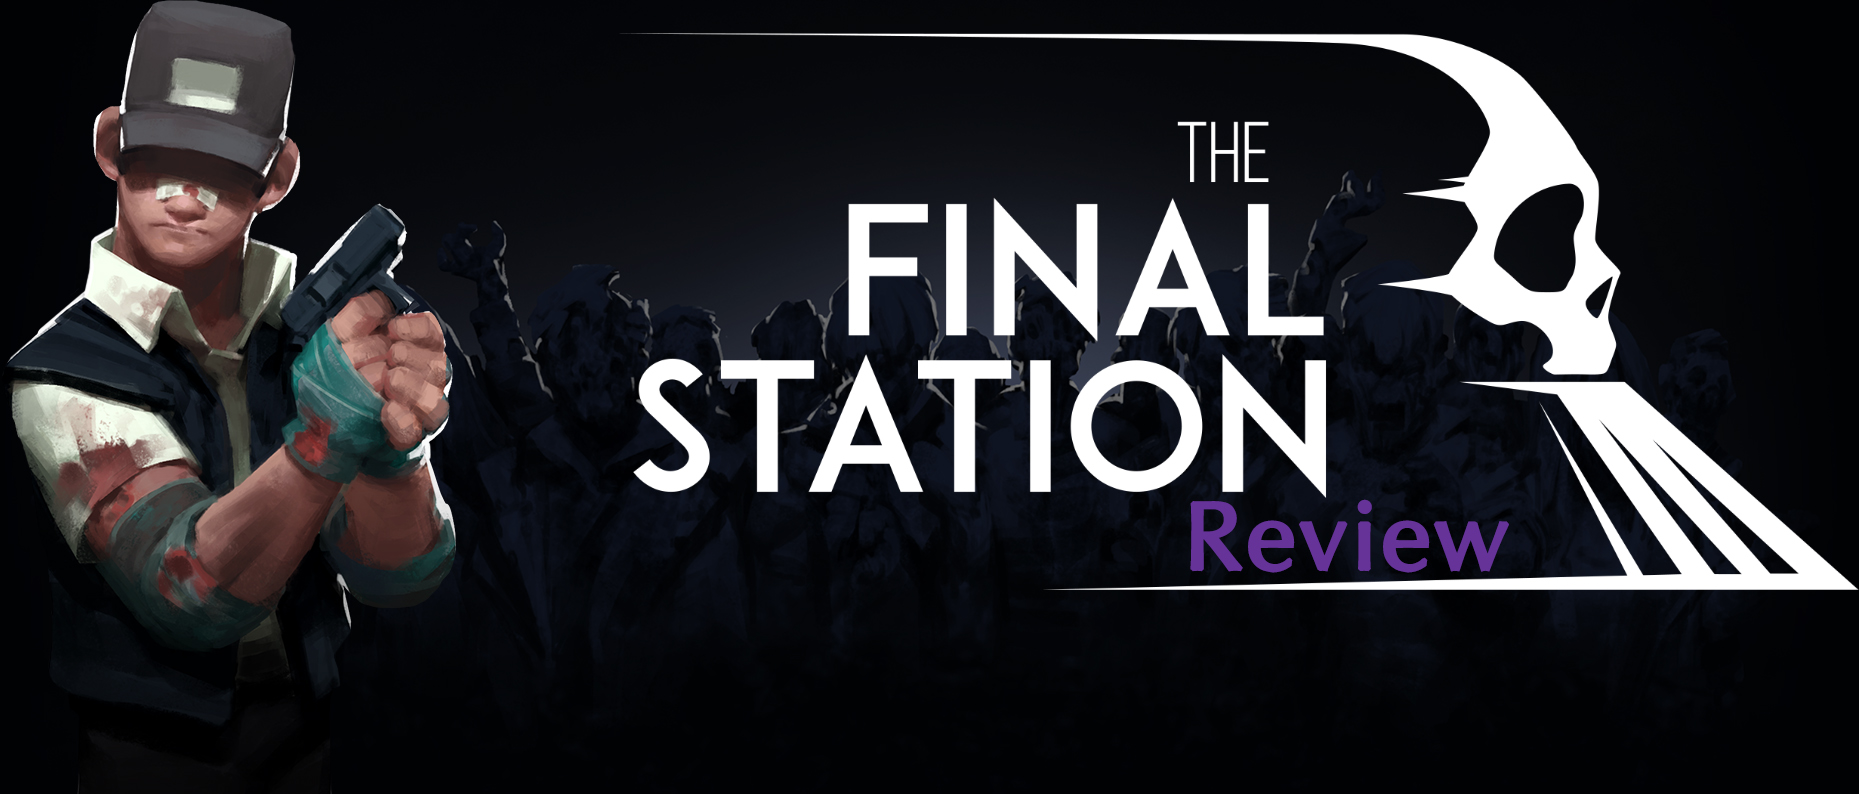 the final station banner